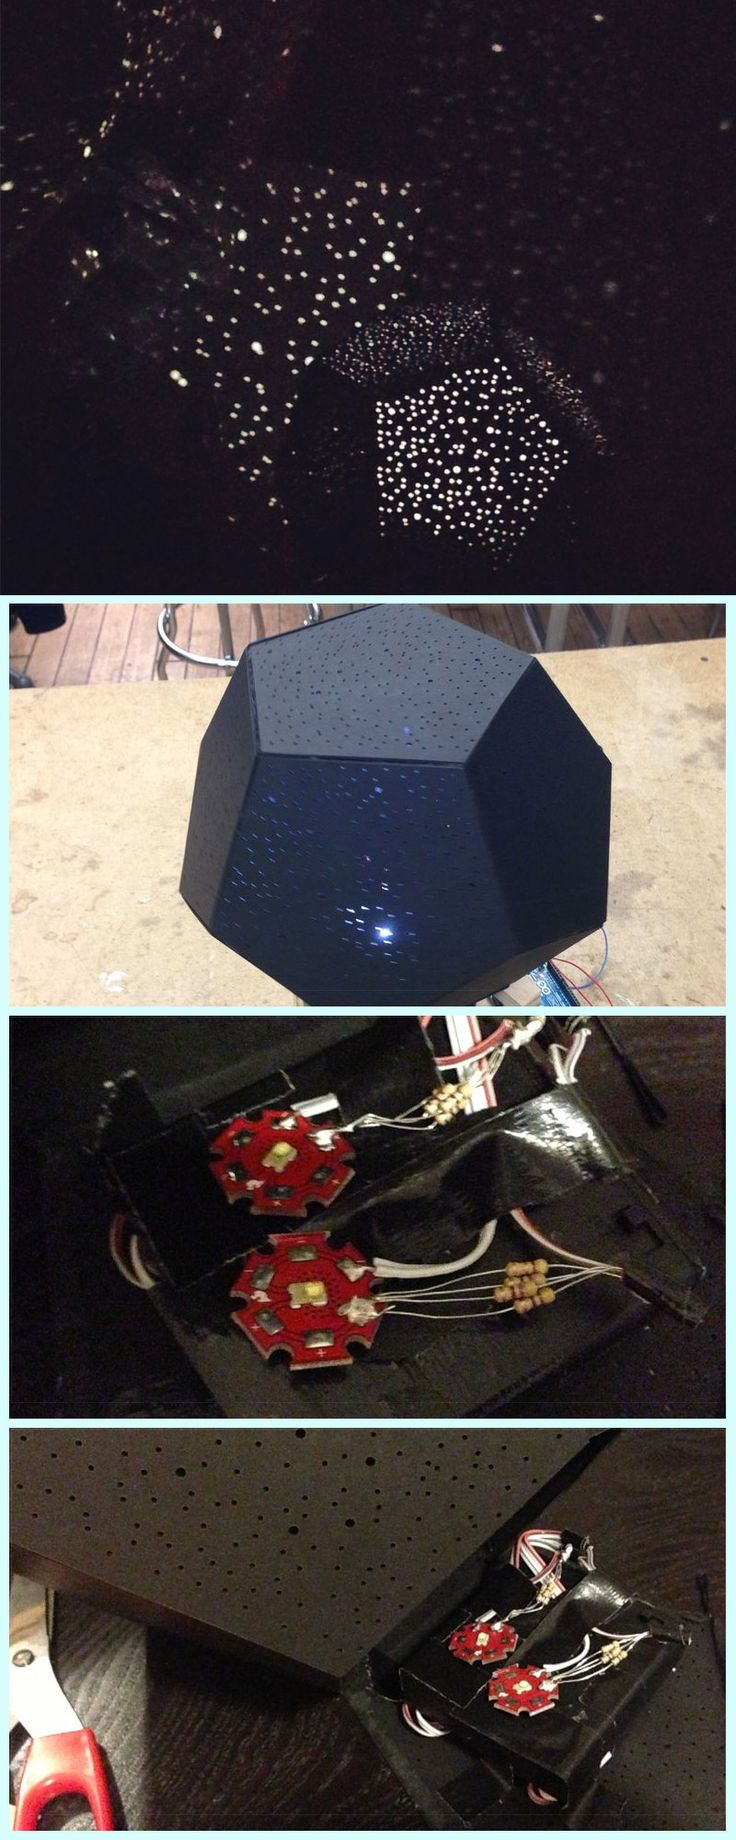 Project a constellation of stars on your ceiling! A fun DIY electronics project for a kid's room.